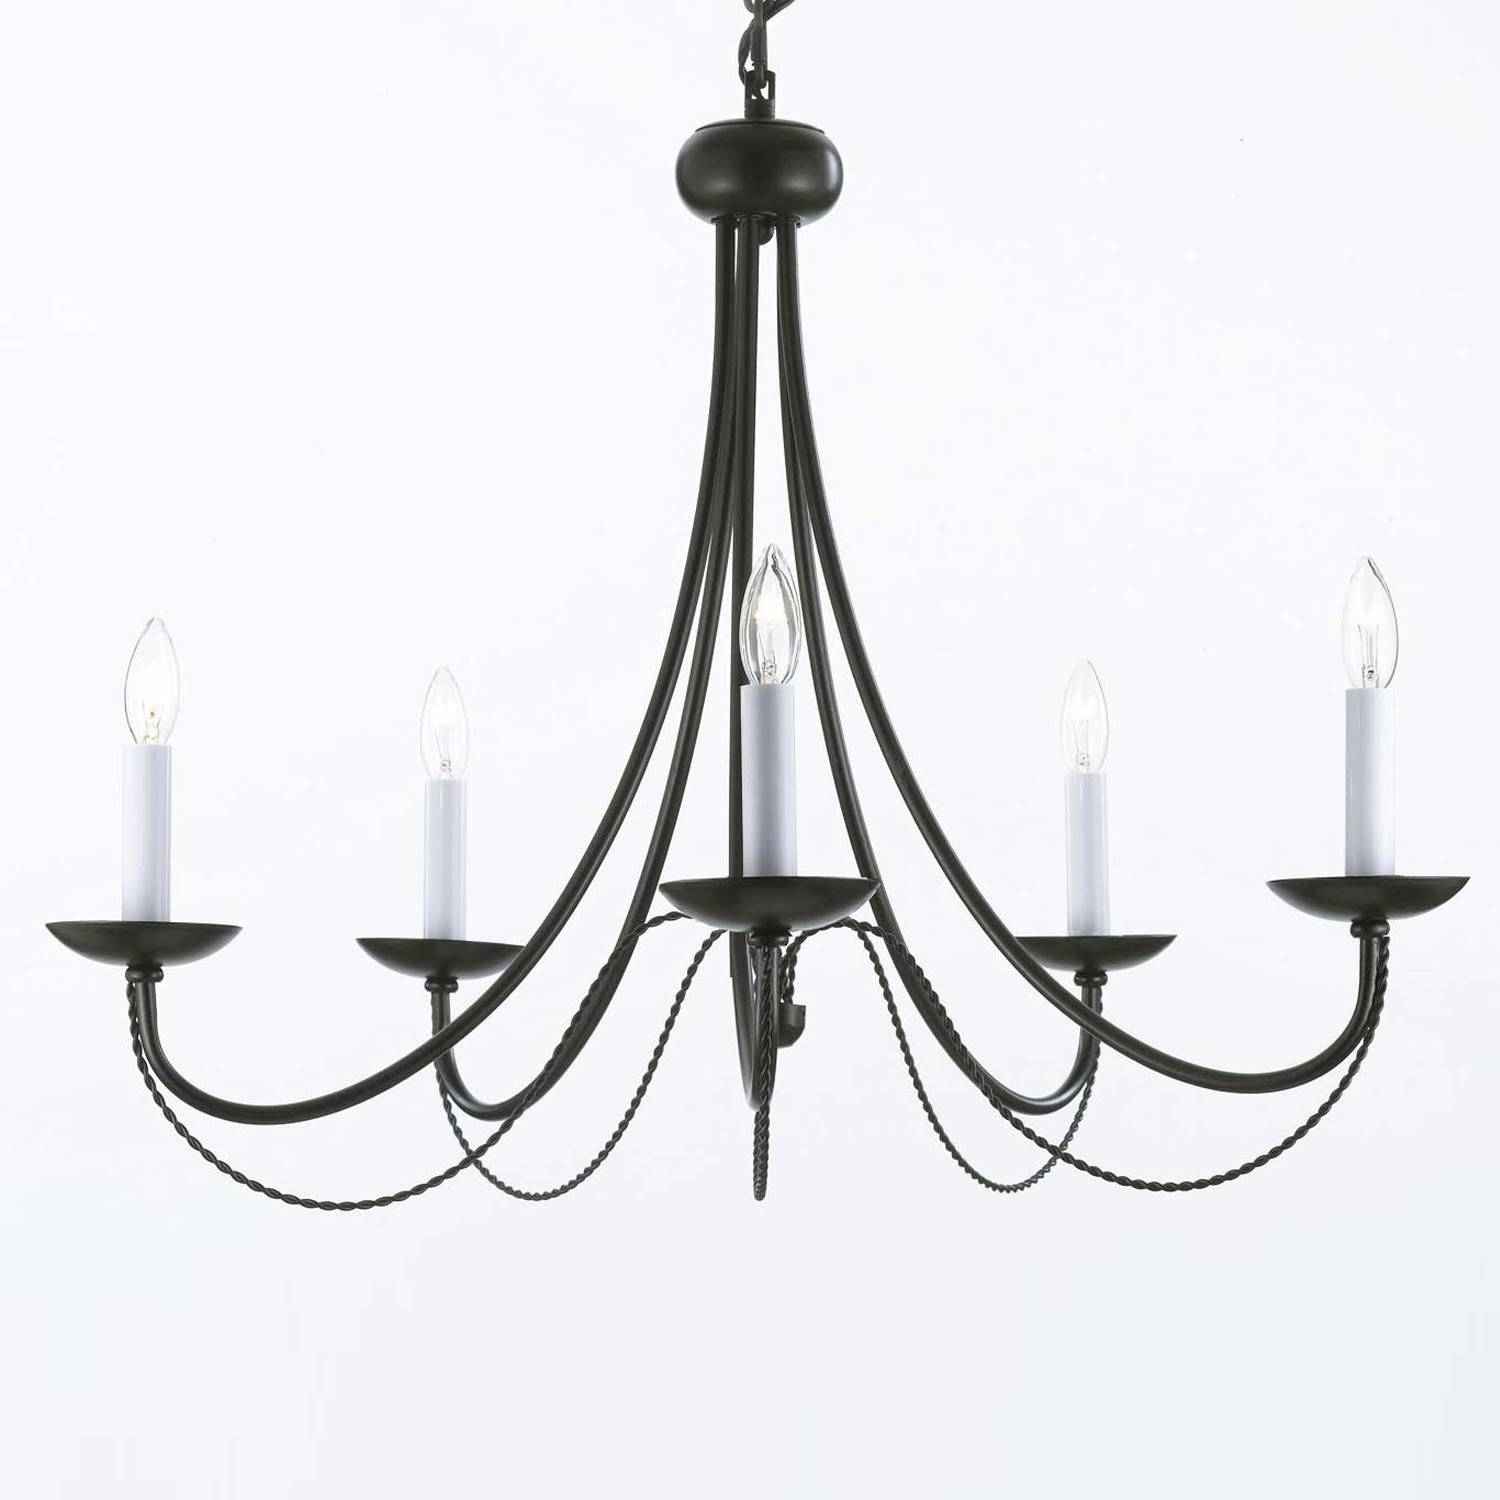 Chandelier. Astonishing French Style Chandeliers: Stunning-French intended for French Style Lights (Image 4 of 15)